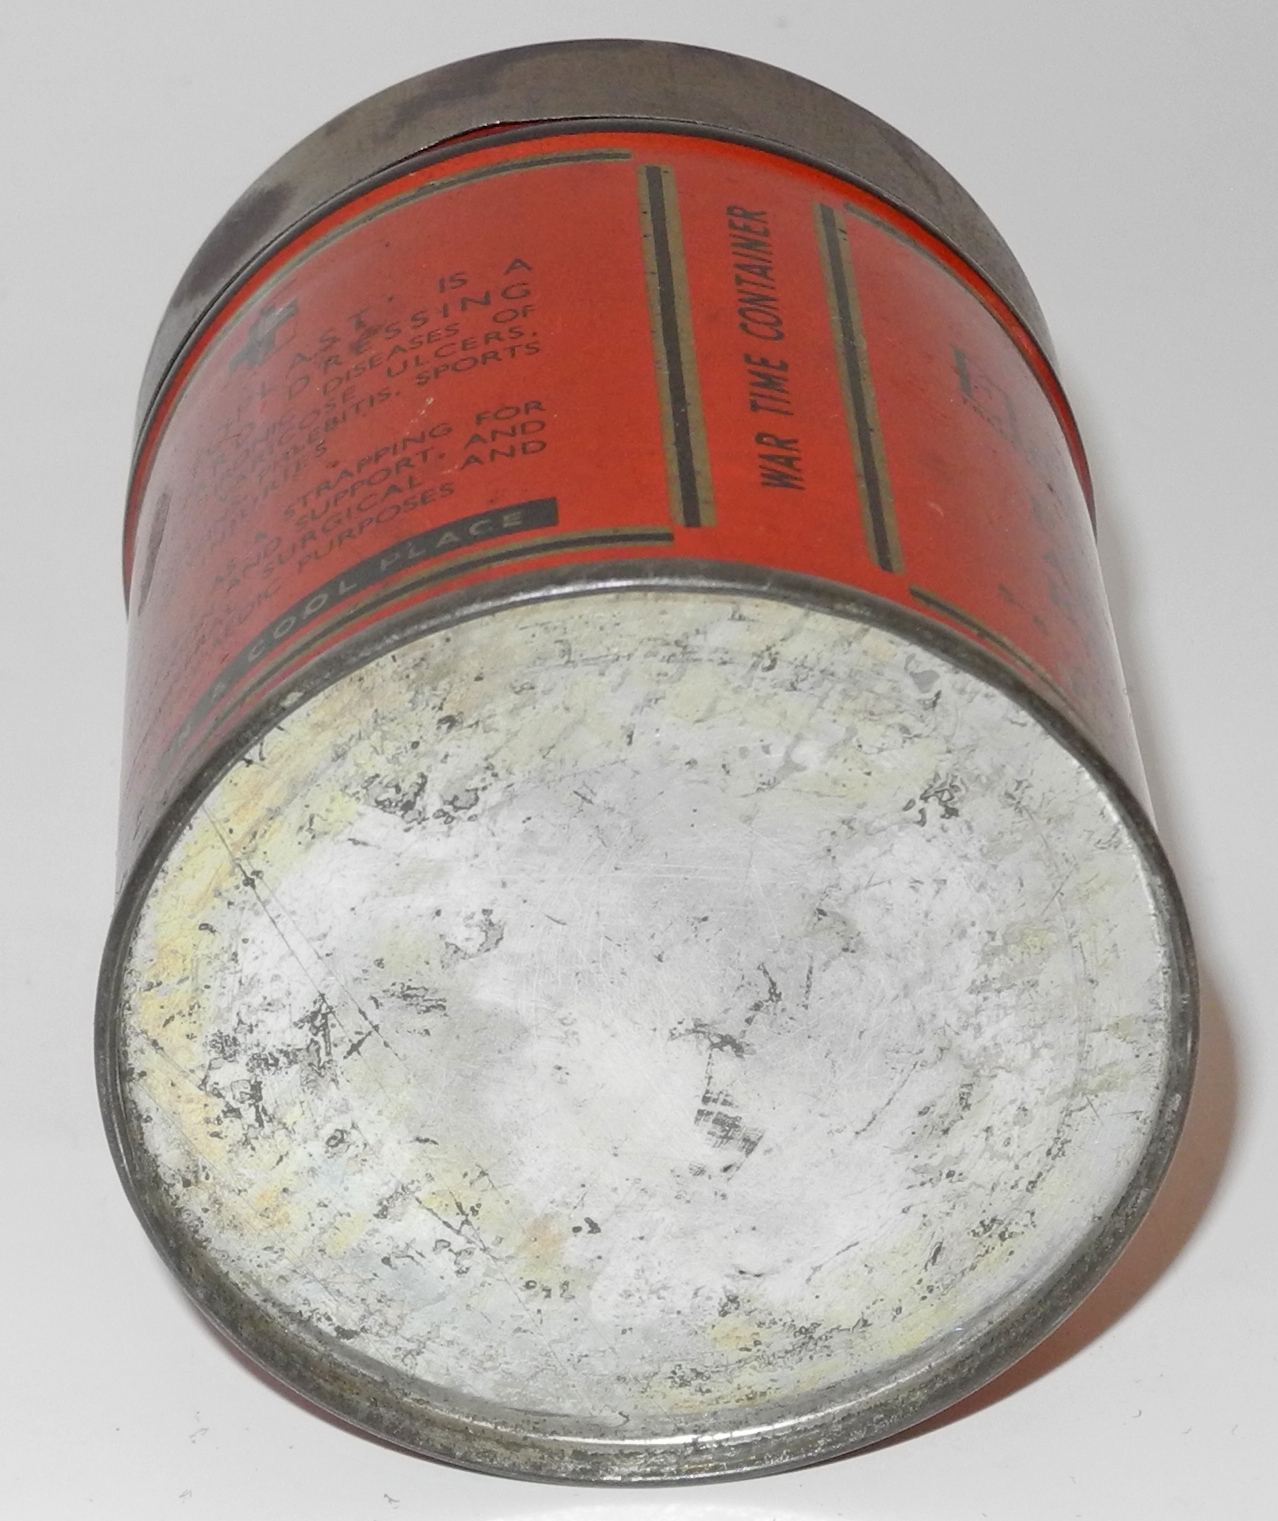 WWII First Aid Kit tin containing full roll of Elastoplast adhesive bandage